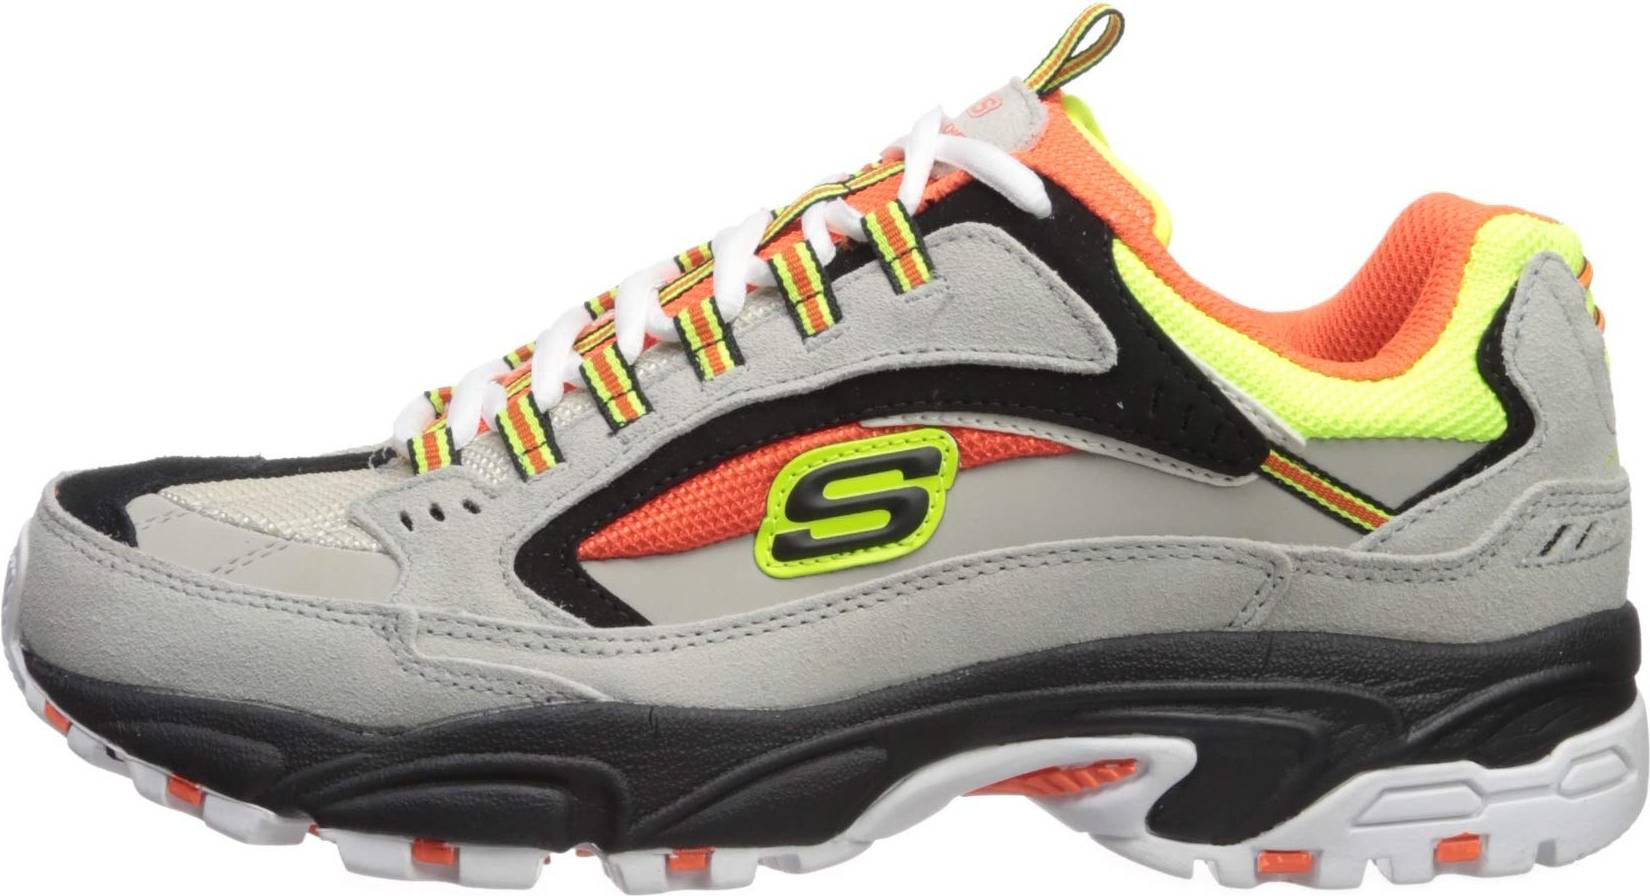 Skechers Wide Training Shoes